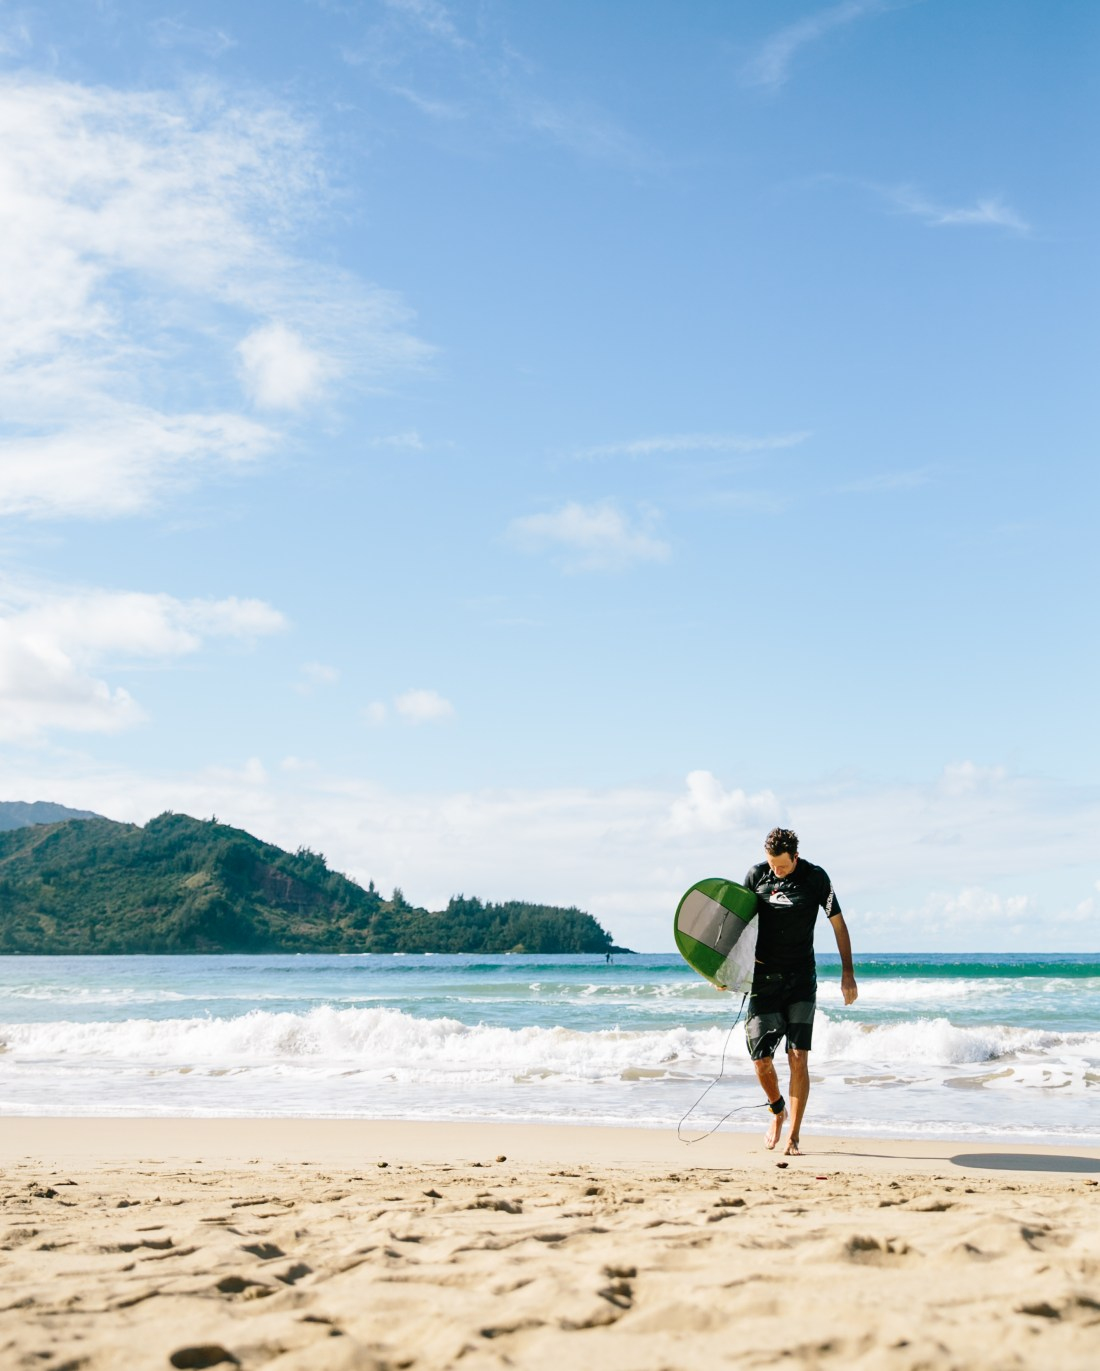 Surfing Hanalei Bay, Kauai | Travel Guide to Kauai, Hawaii | Travel Tips for Kauai | Packing List for Kauai | Helpful Tips for Traveling to Kauai | Kauai Travel Guide | Hawaii Travel Guide | Why You Should Visit Hawaii | Napali Coast Boat Excursion | Activities To Do in Kauai | Best Vacation Places in the World via @elanaloo + elanaloo.com